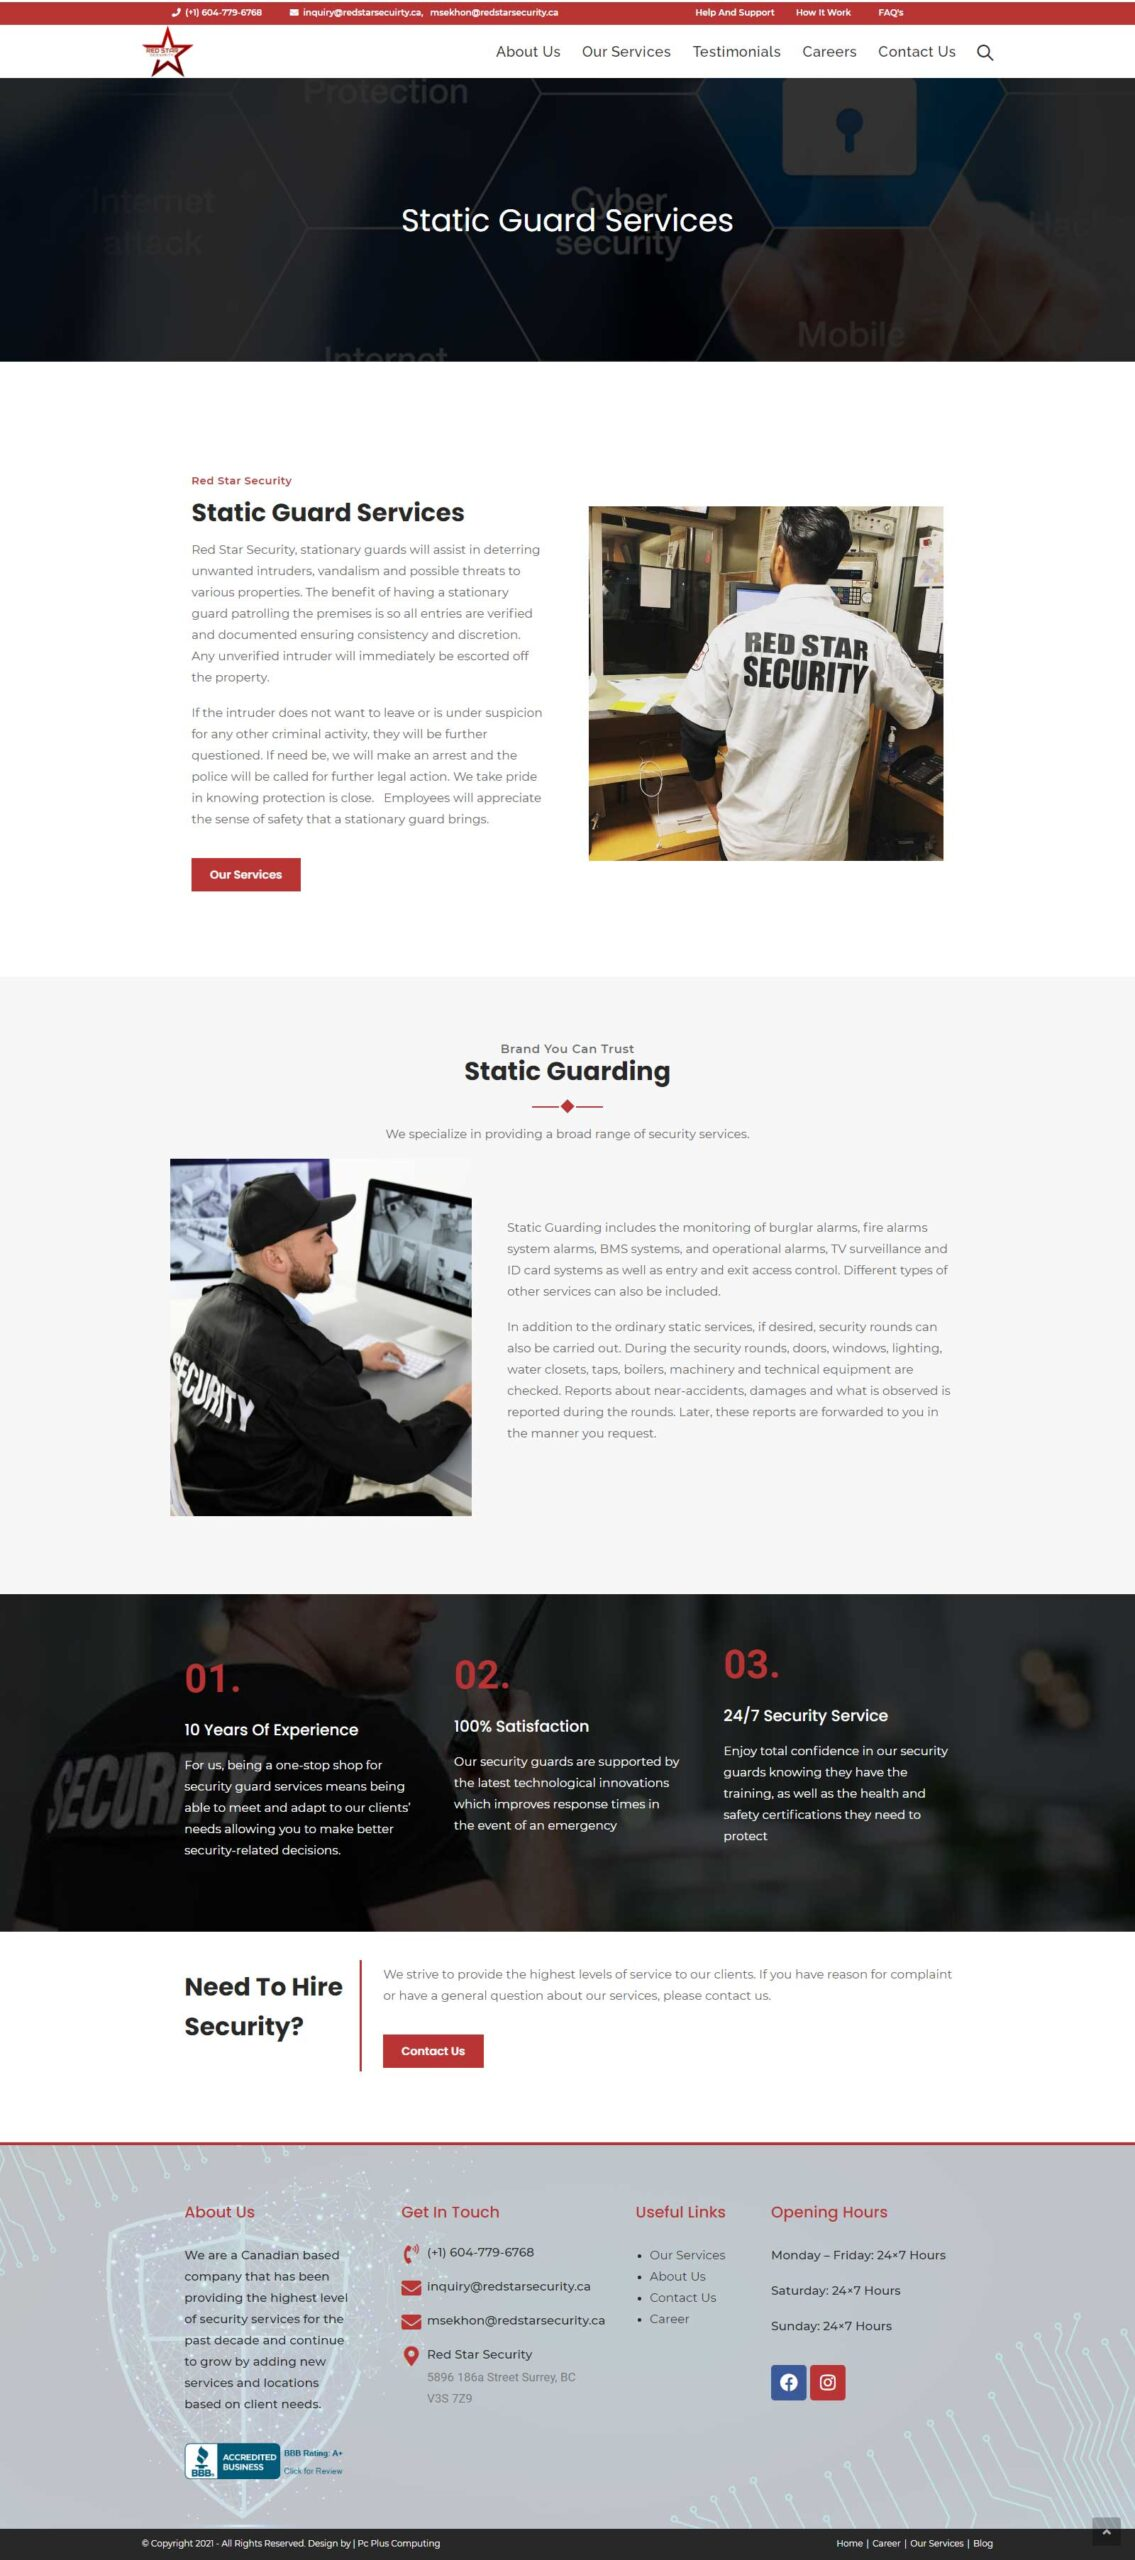 red-star-security-services-page-single